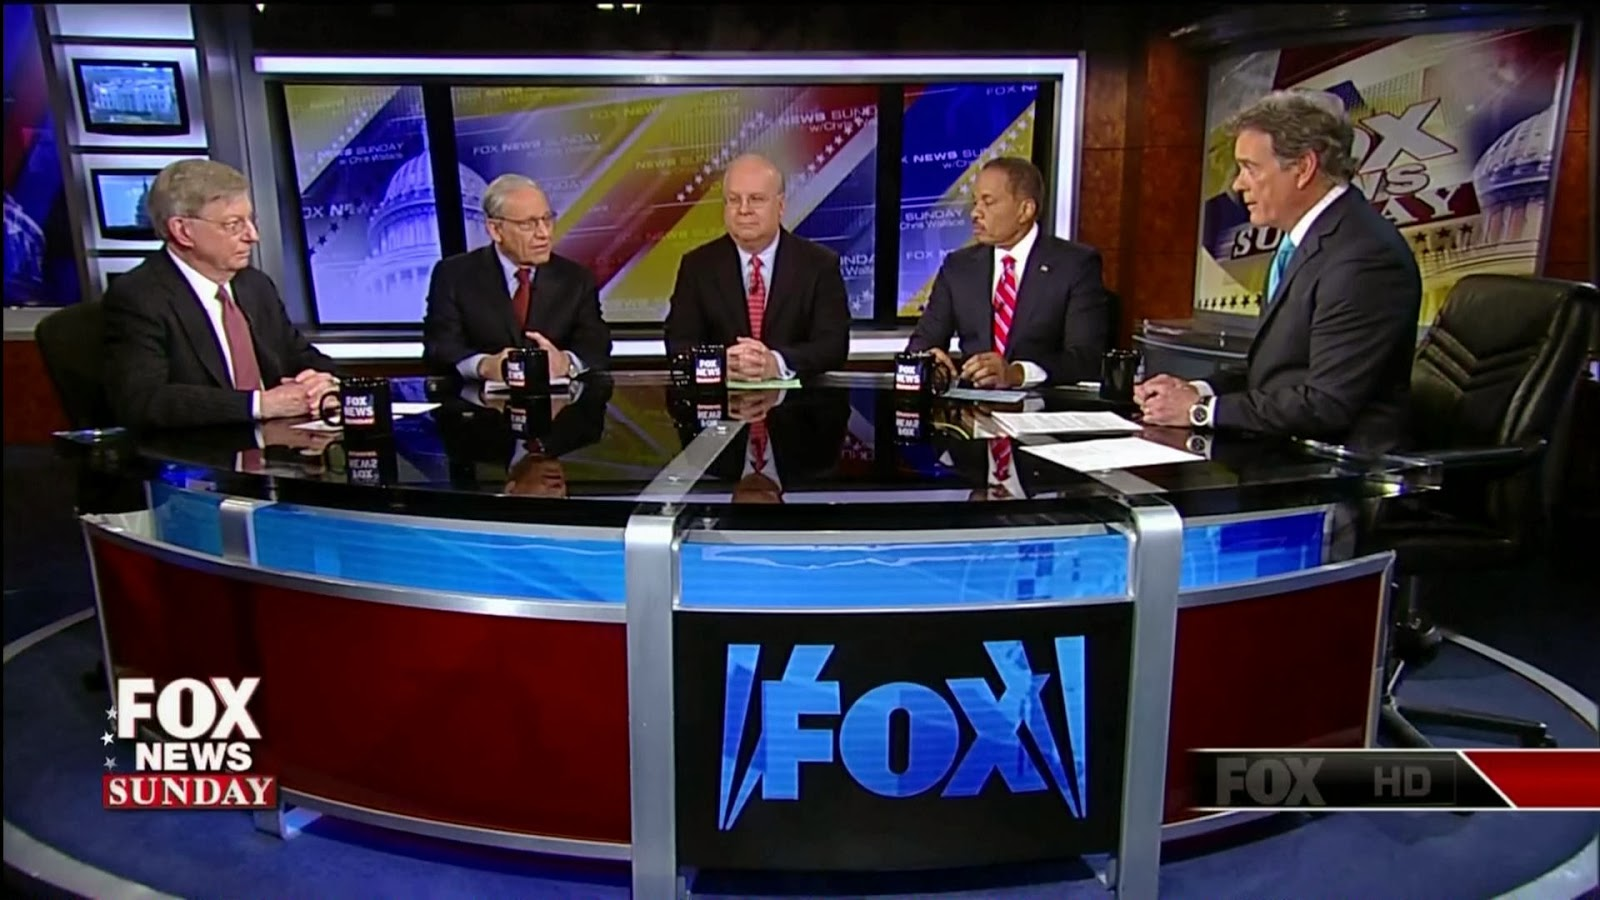 How To Watch Fox News Without Paying For Cable Tv Cord